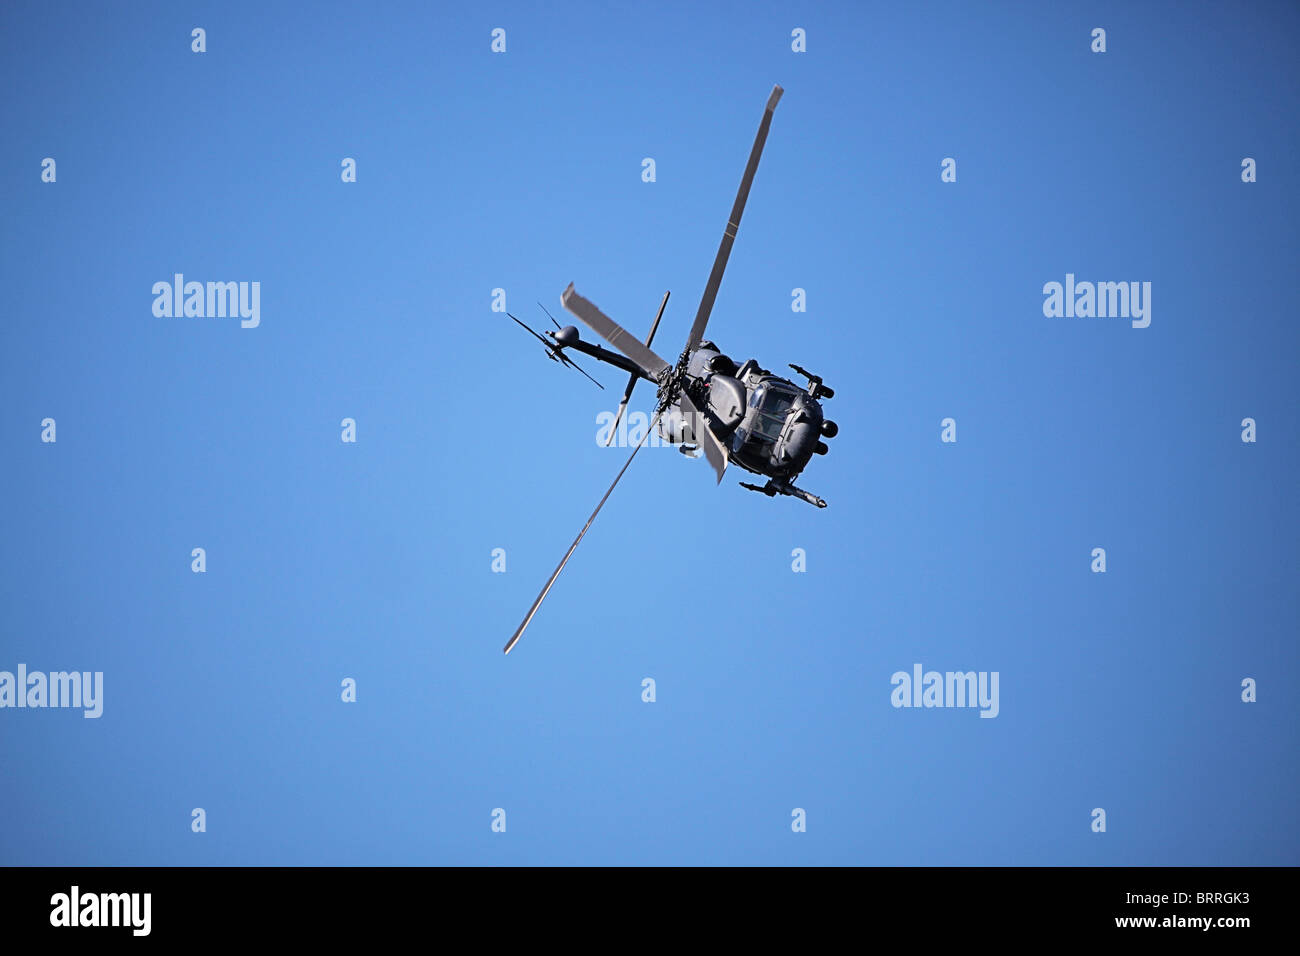 Military Helicopter - Stock Image